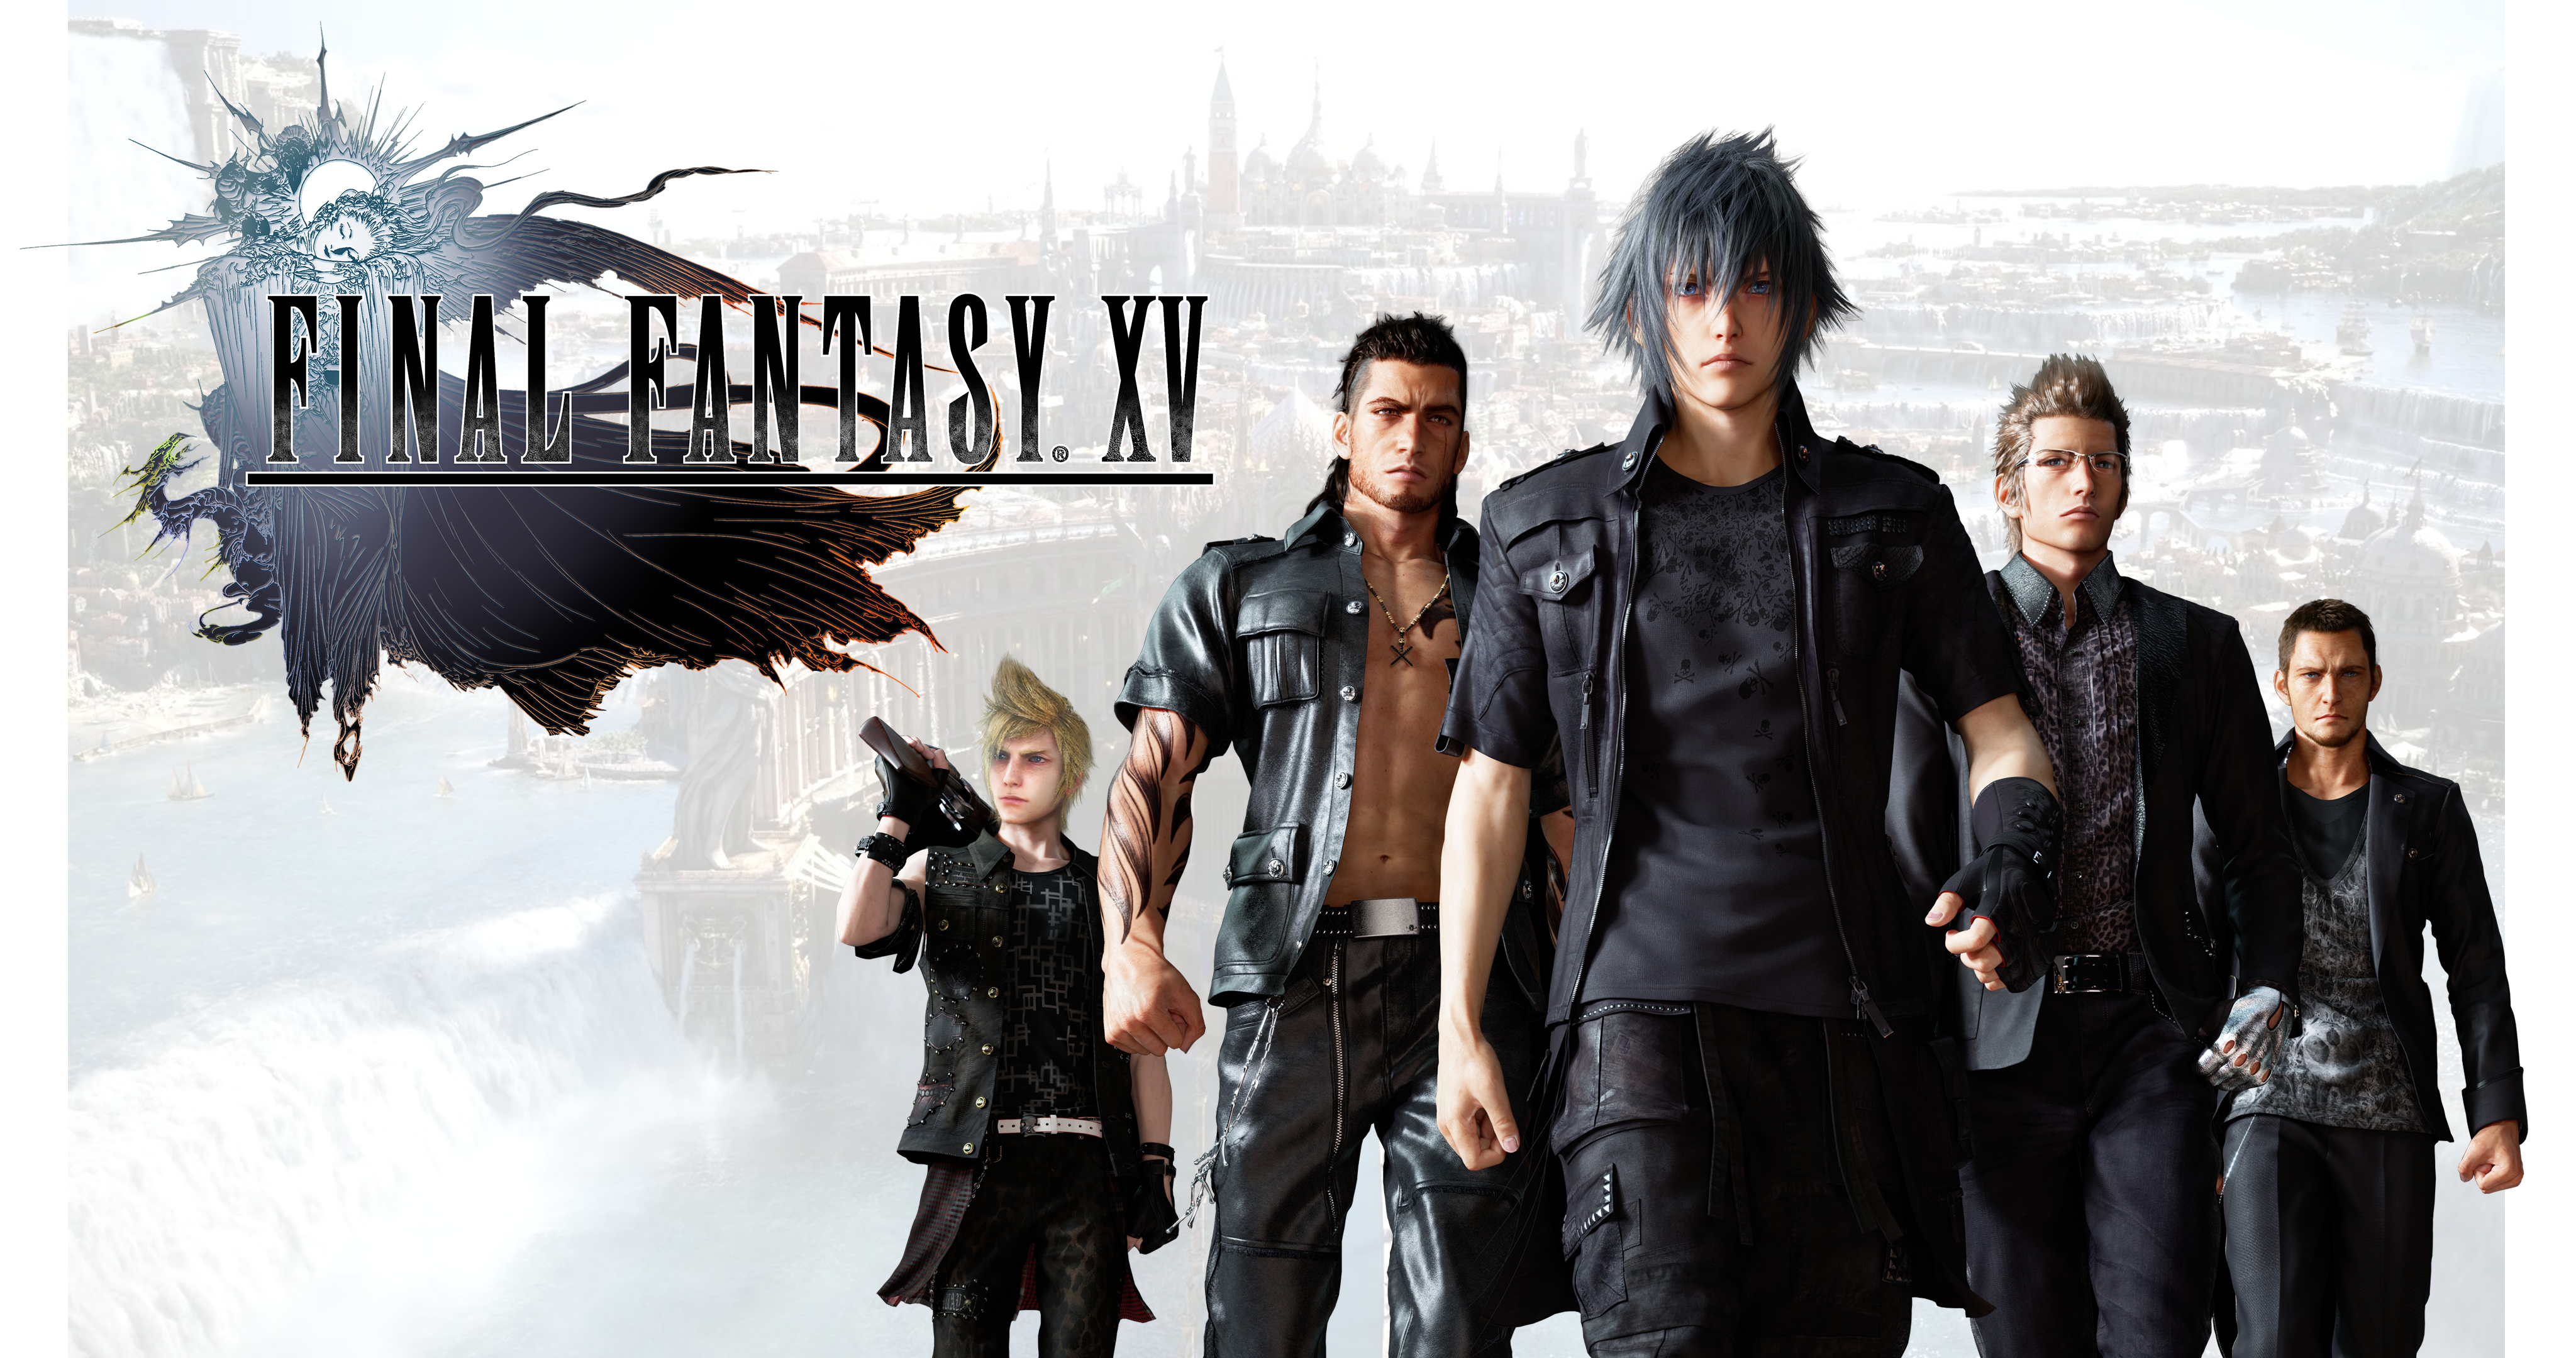 Final Fantasy Xv Characters Video Game 4k Hd Desktop: Square Enix Teases Shadowy Figures In Final Fantasy XV Box